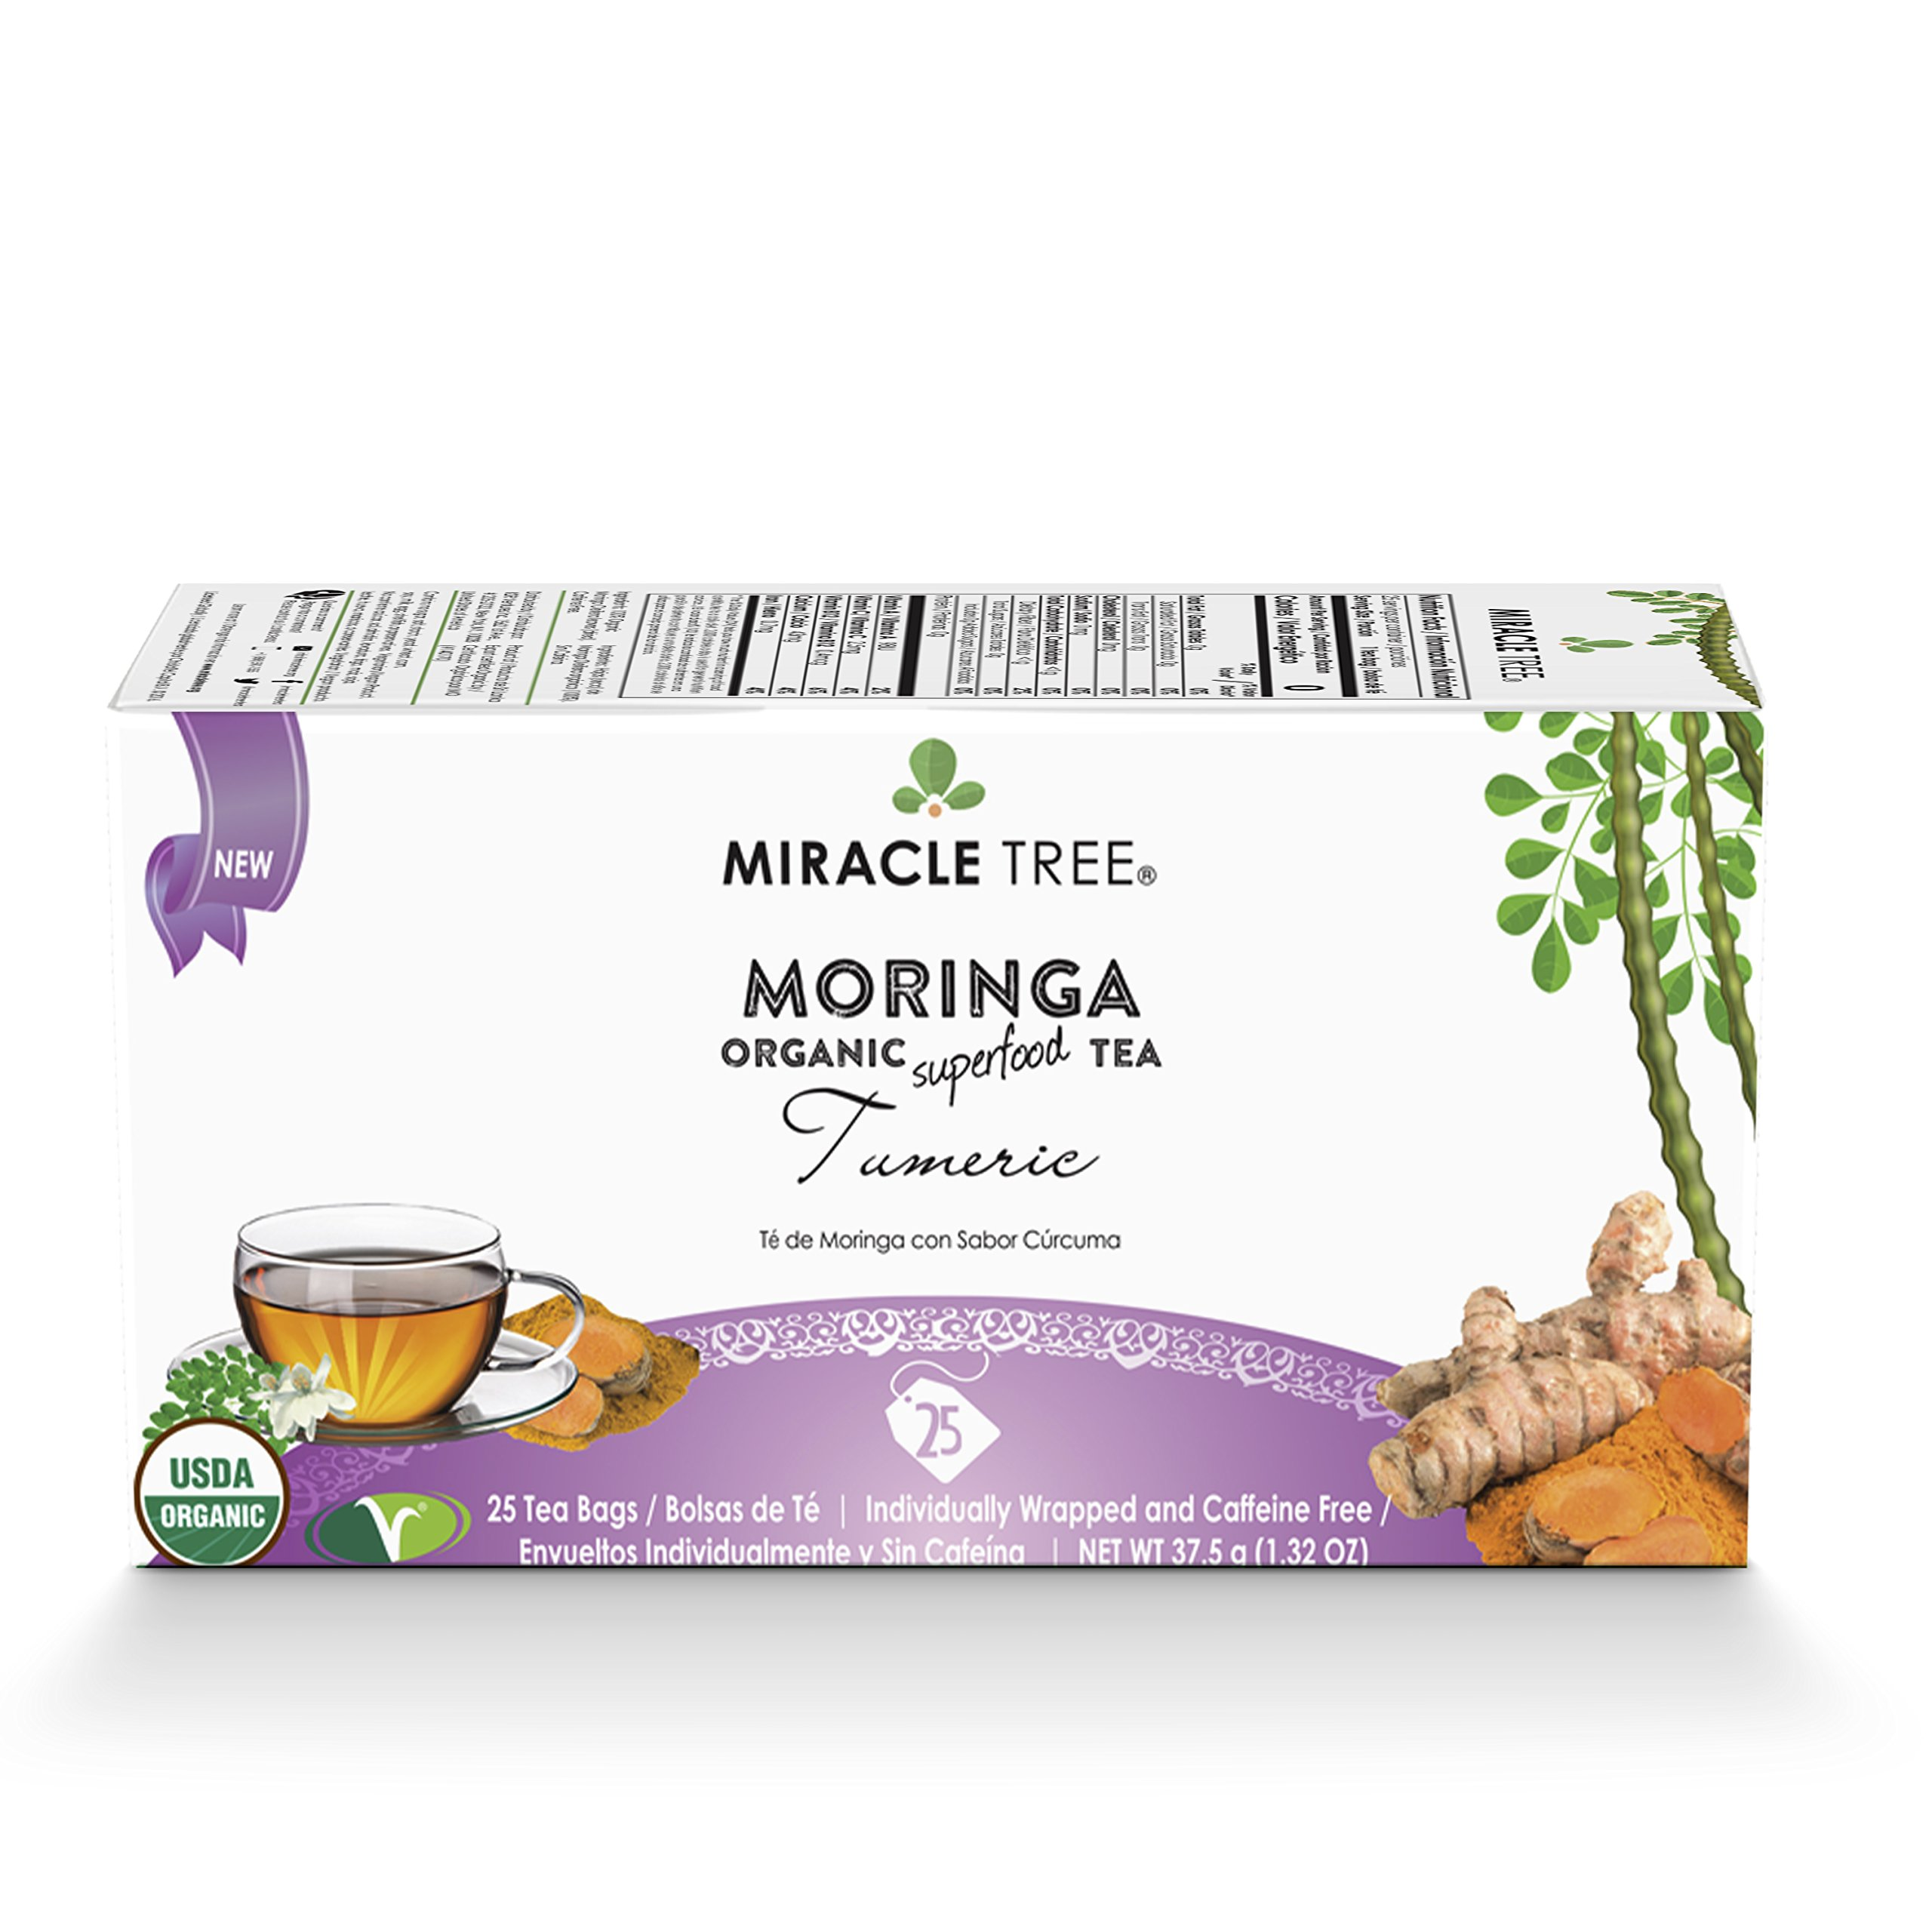 What's Your Cup Of Tea 5 Miracle Teas for Fat Loss advise